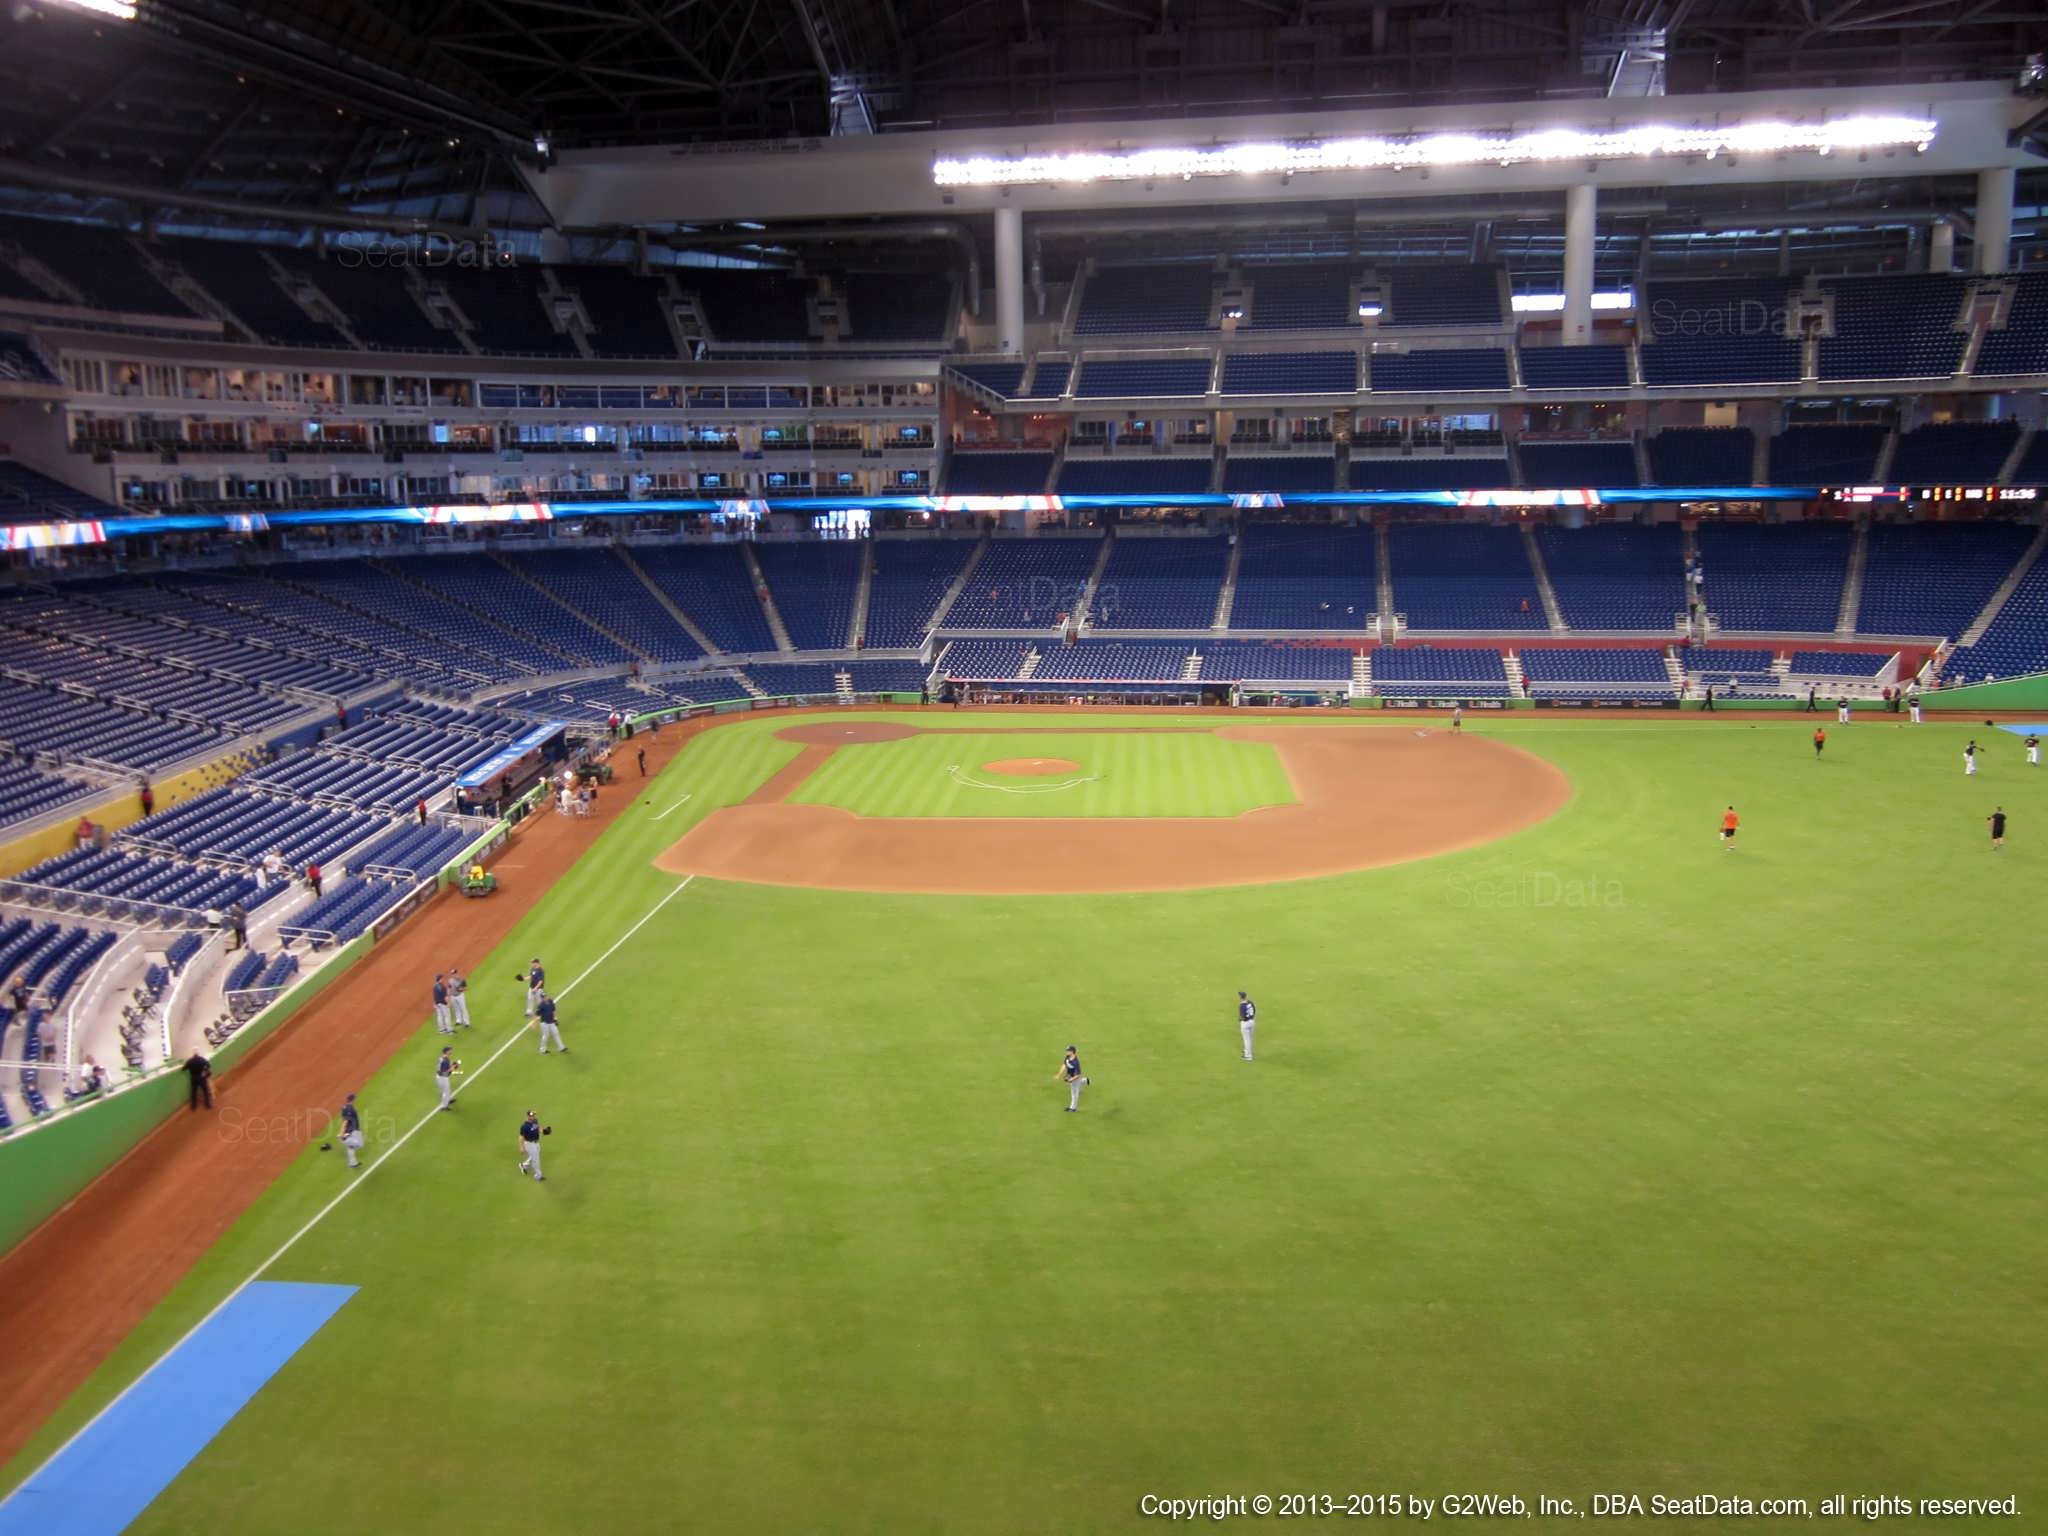 Seat view from section 140 at Marlins Park, home of the Miami Marlins